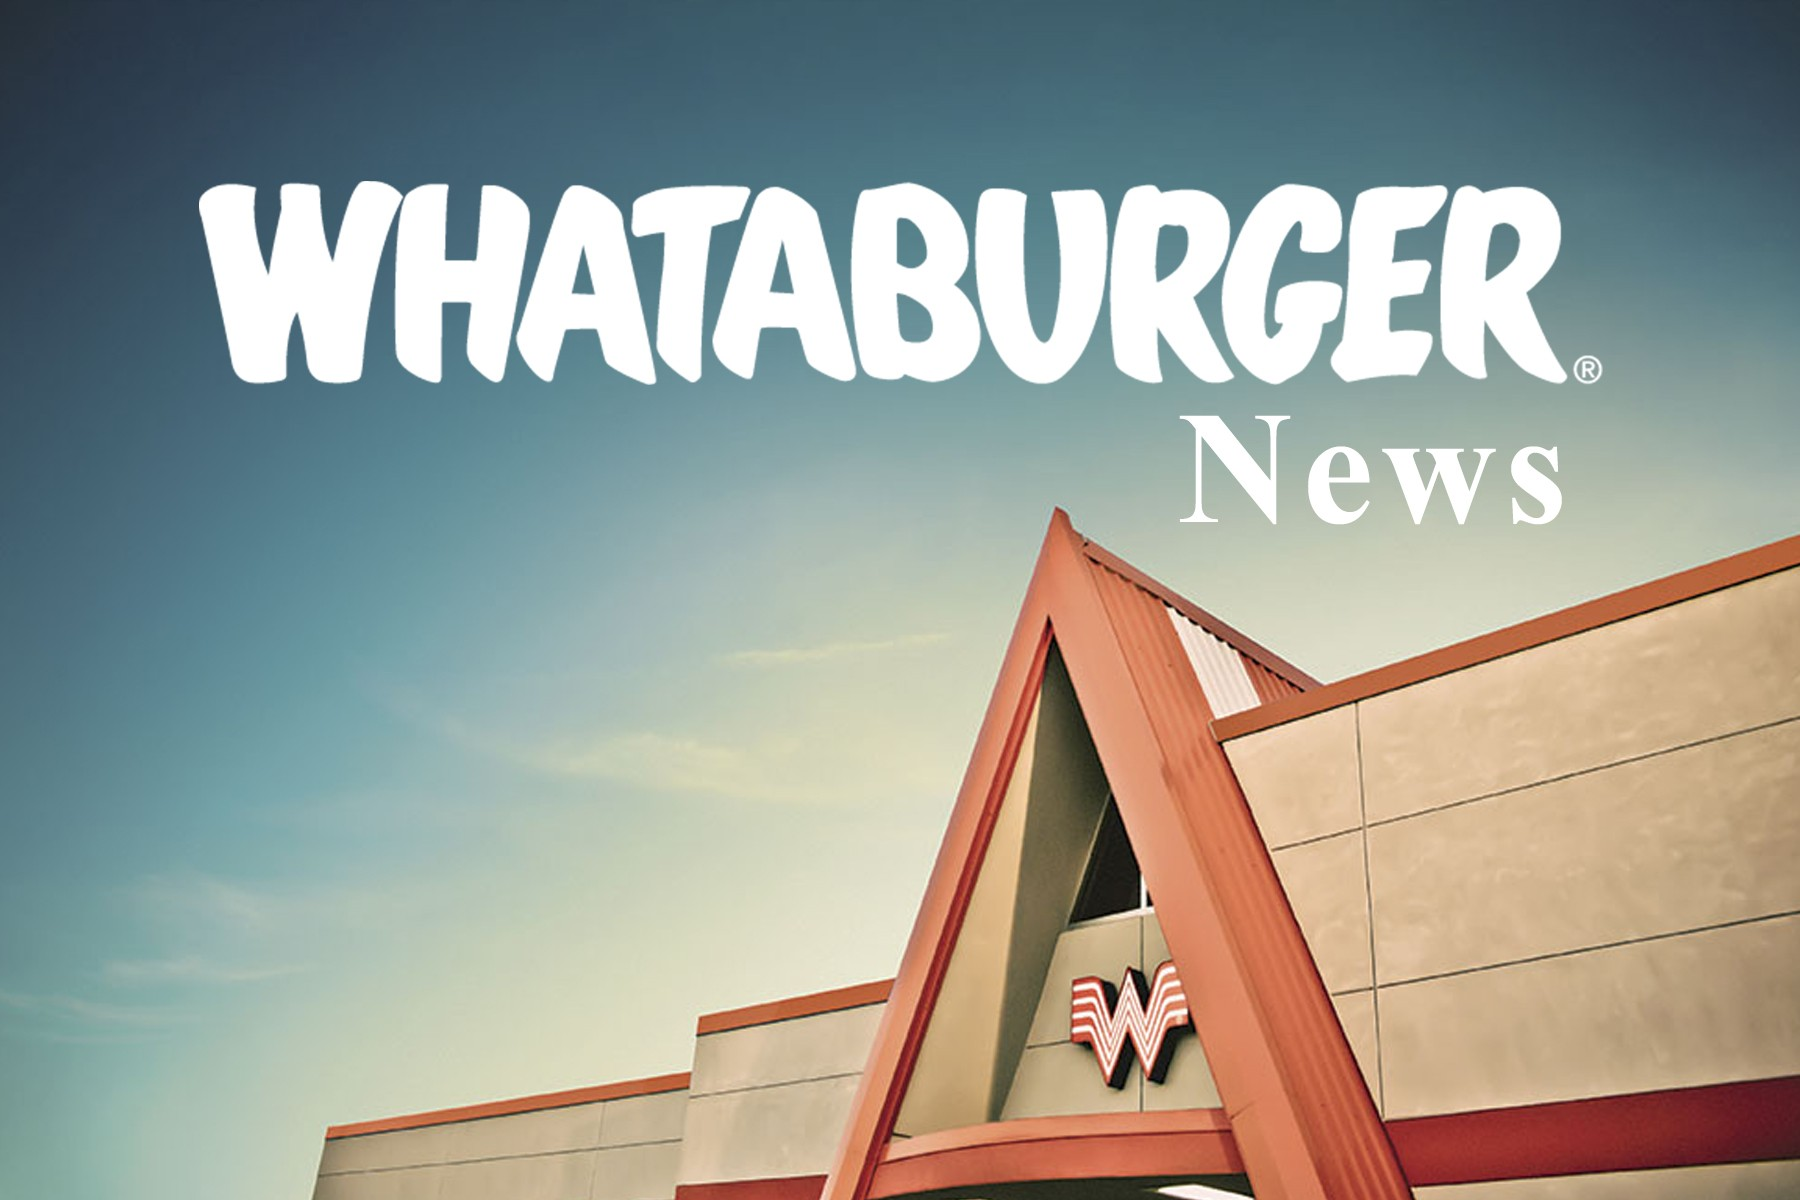 WHATABURGER AND HOUSTON TEXANS JOIN FORCES TO END HUNGER IN HOUSTON